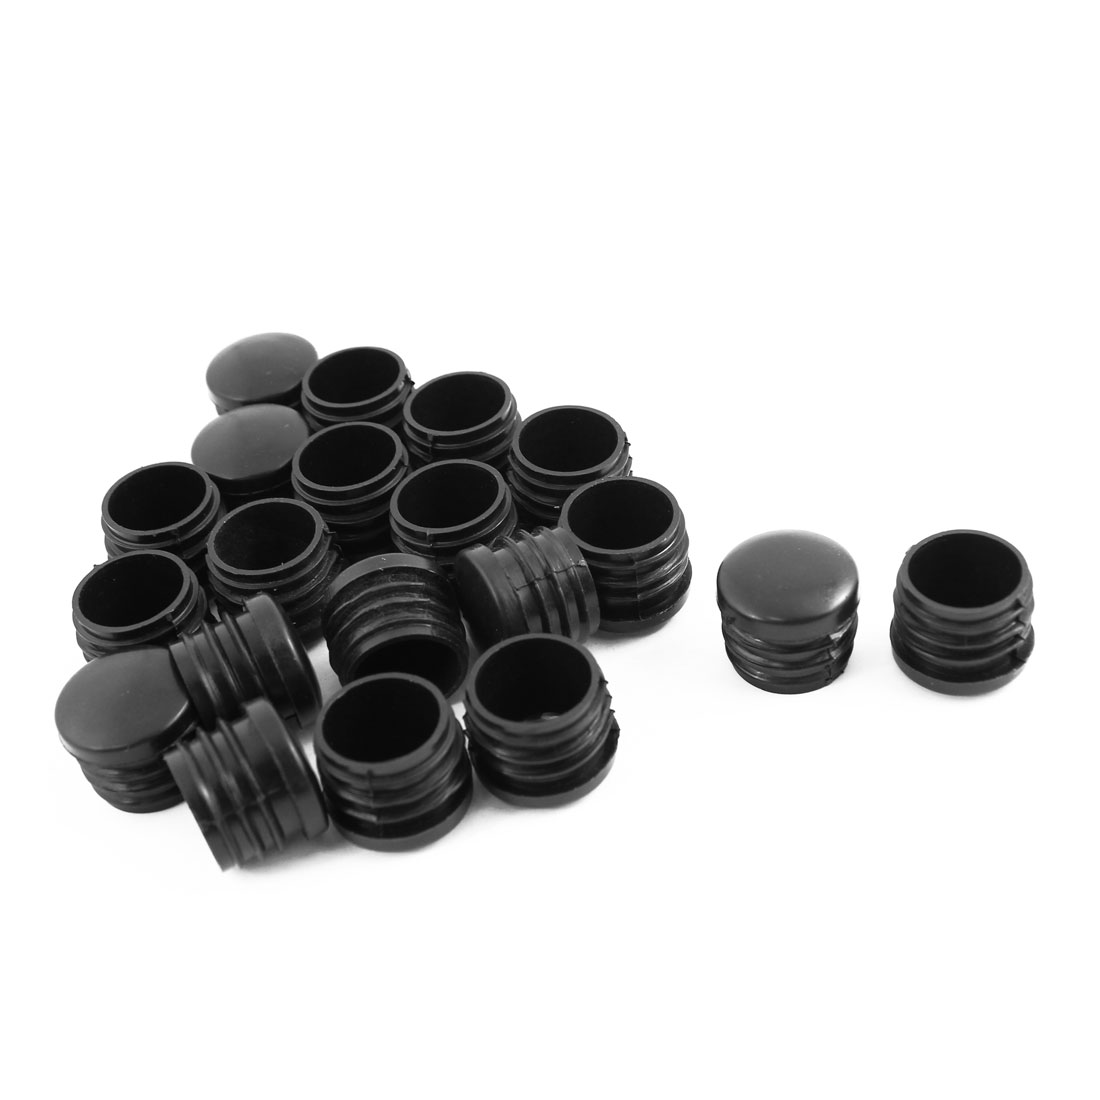 20 Pcs Black Plastic 25mm Thread Round Tubing Pipe Insert Caps Covers